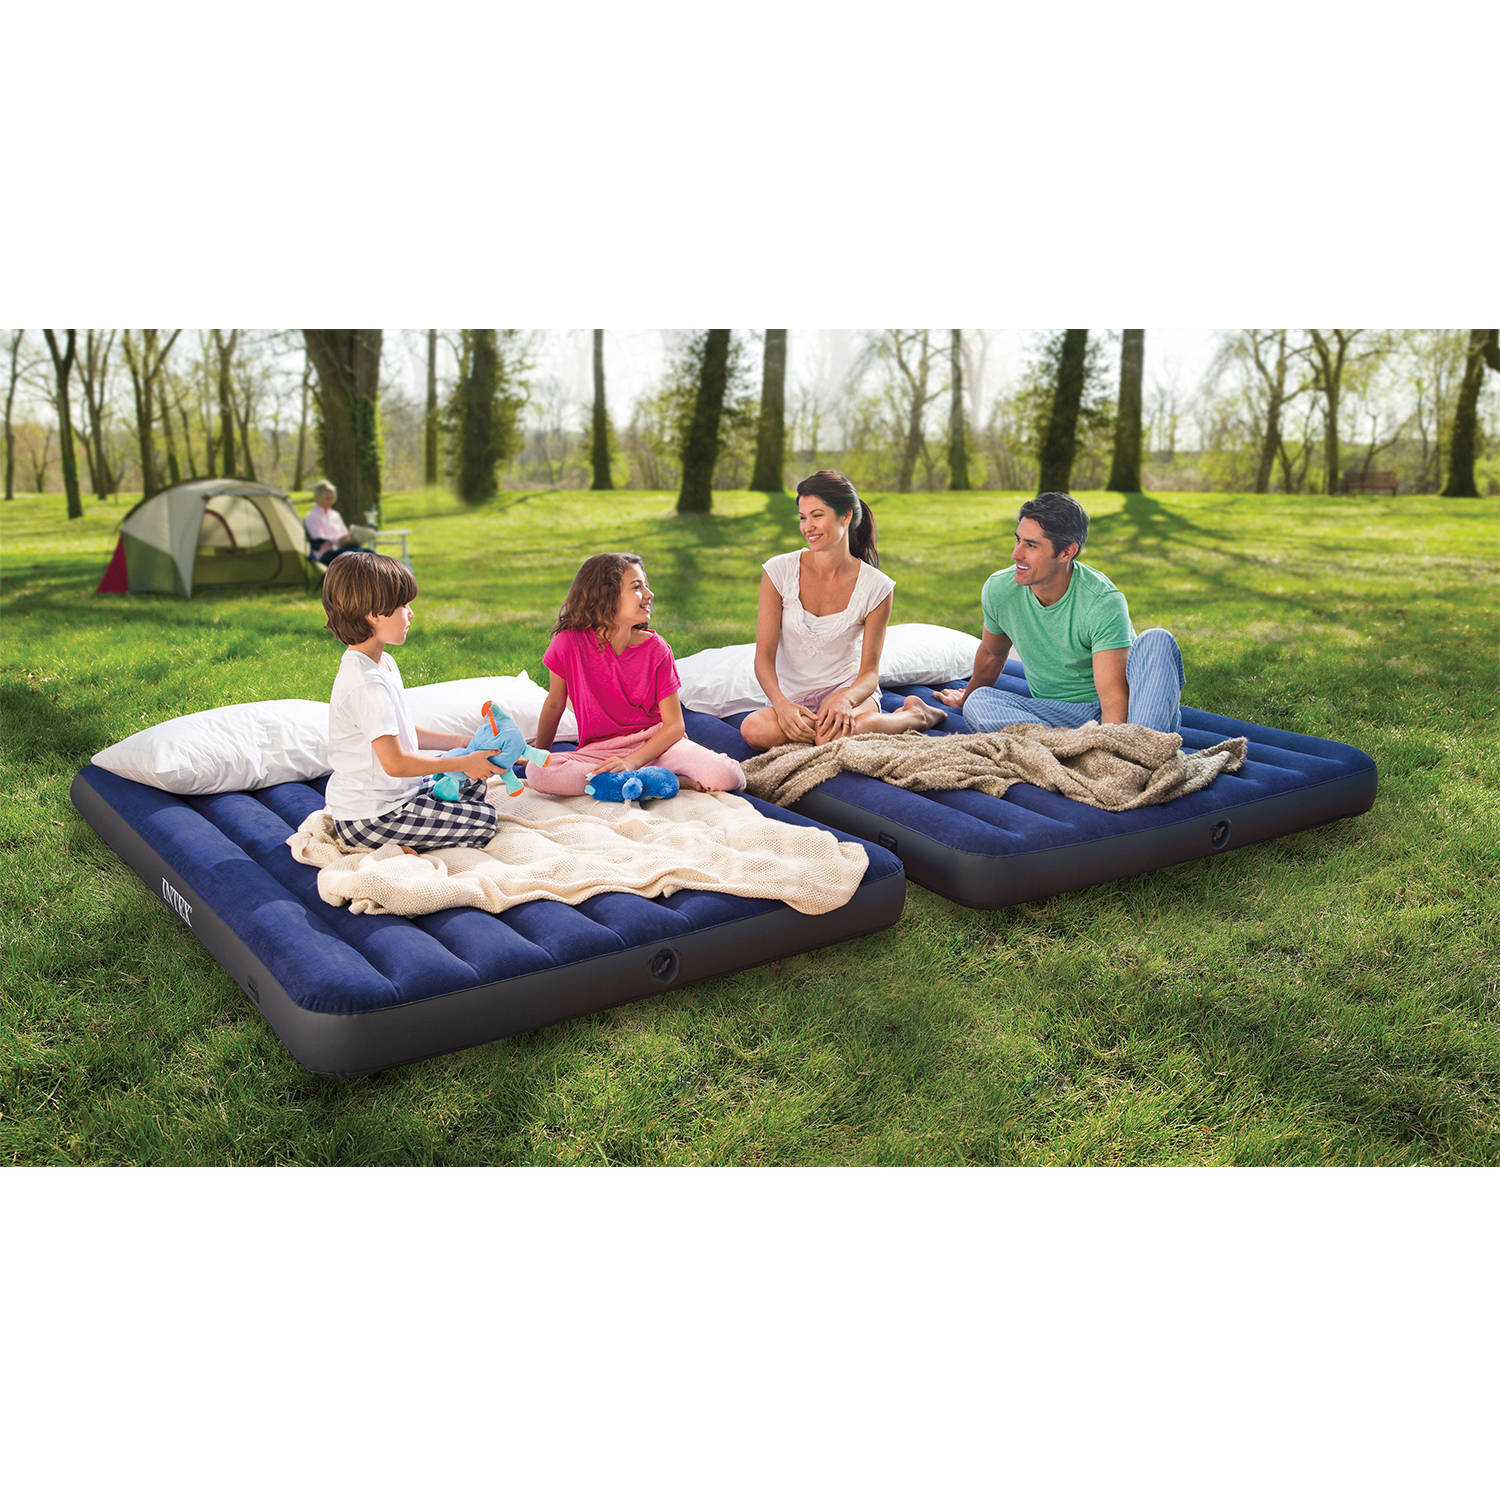 Intex Queen 2 In 1 Guest Airbed Comes With 2 Mattresses